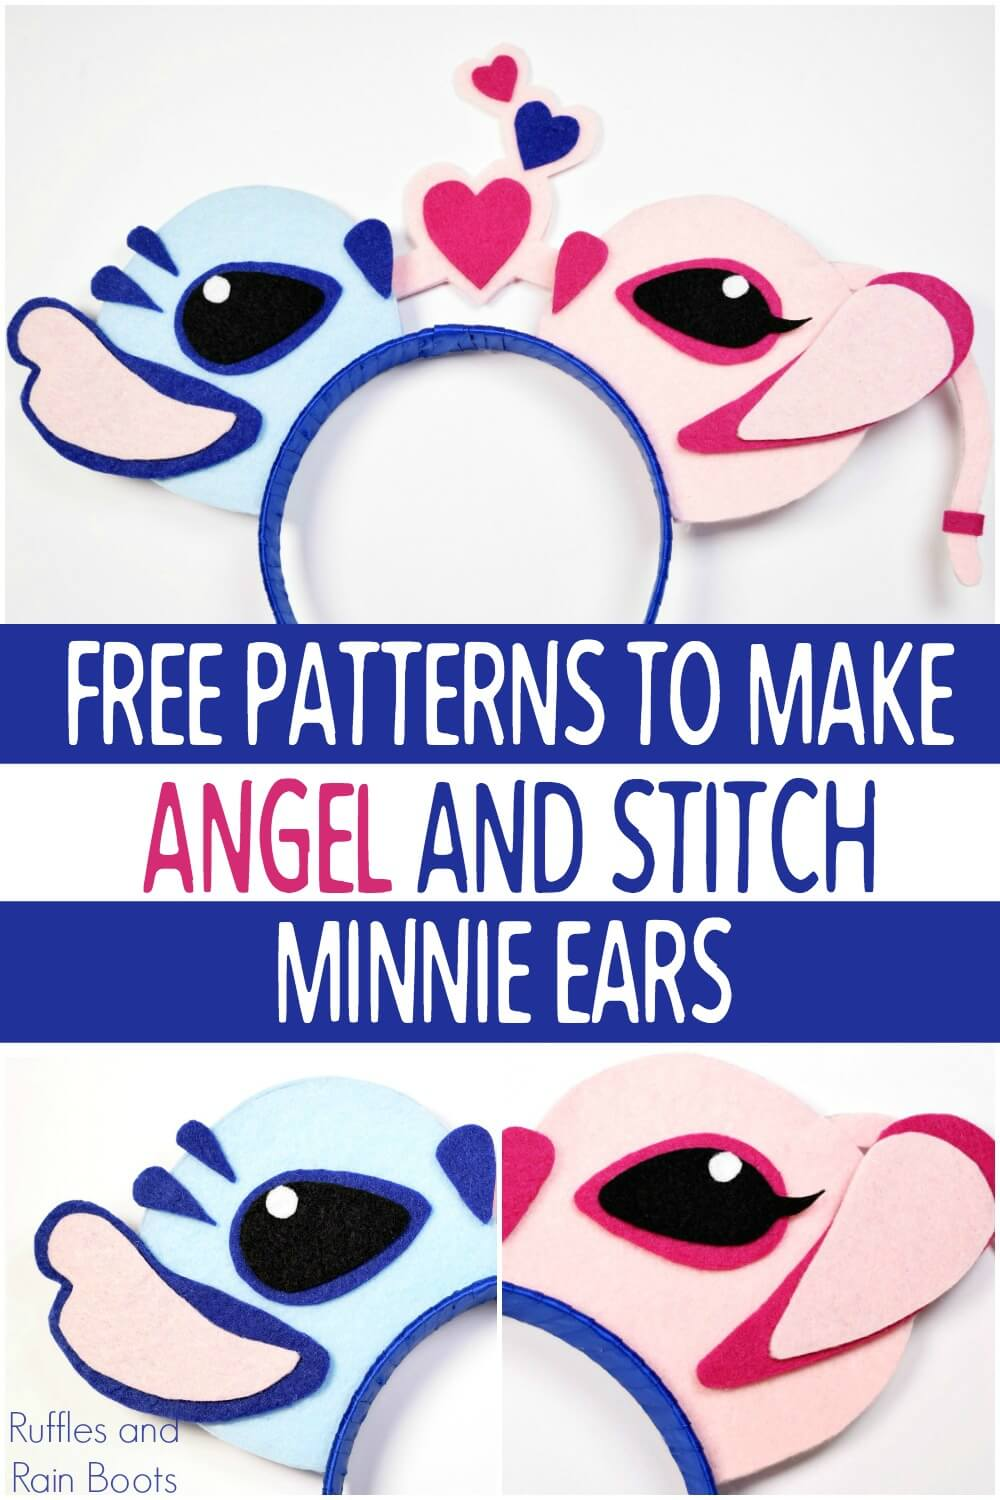 photo collage of adorable DIY Disney ears on white background with text which reads free patterns to make Angel and Stitch Minnie Ears